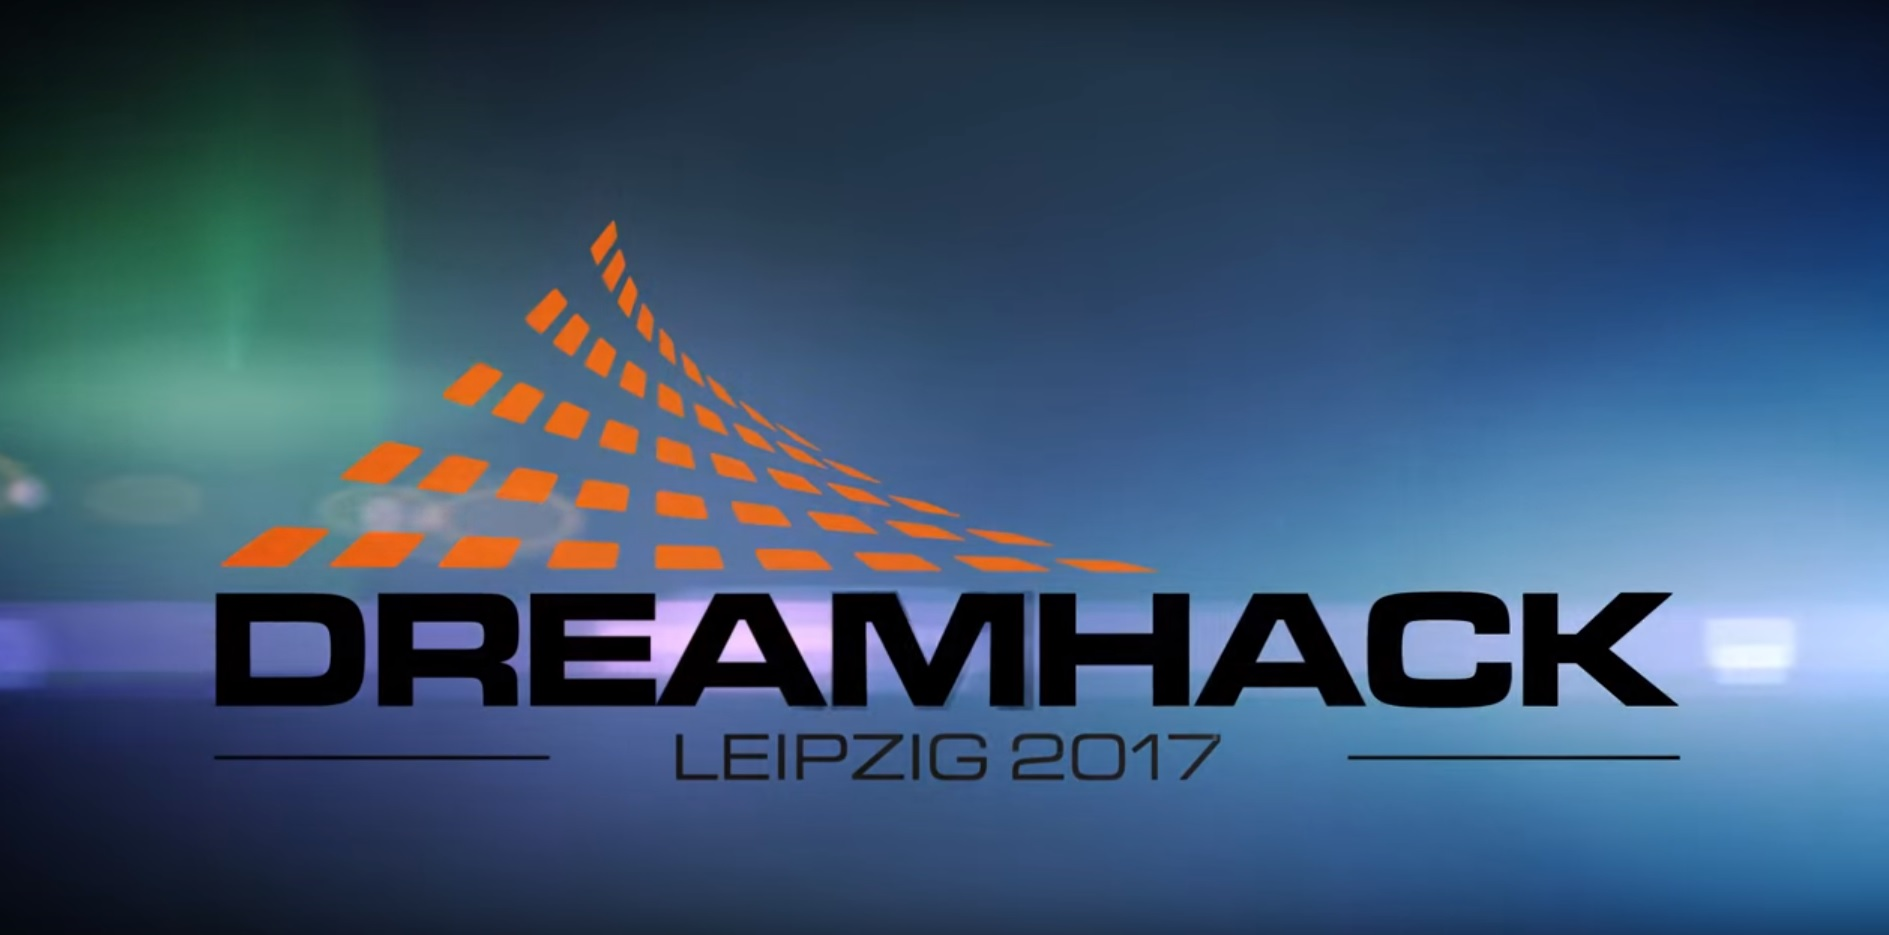 Dream Hack Leipzig